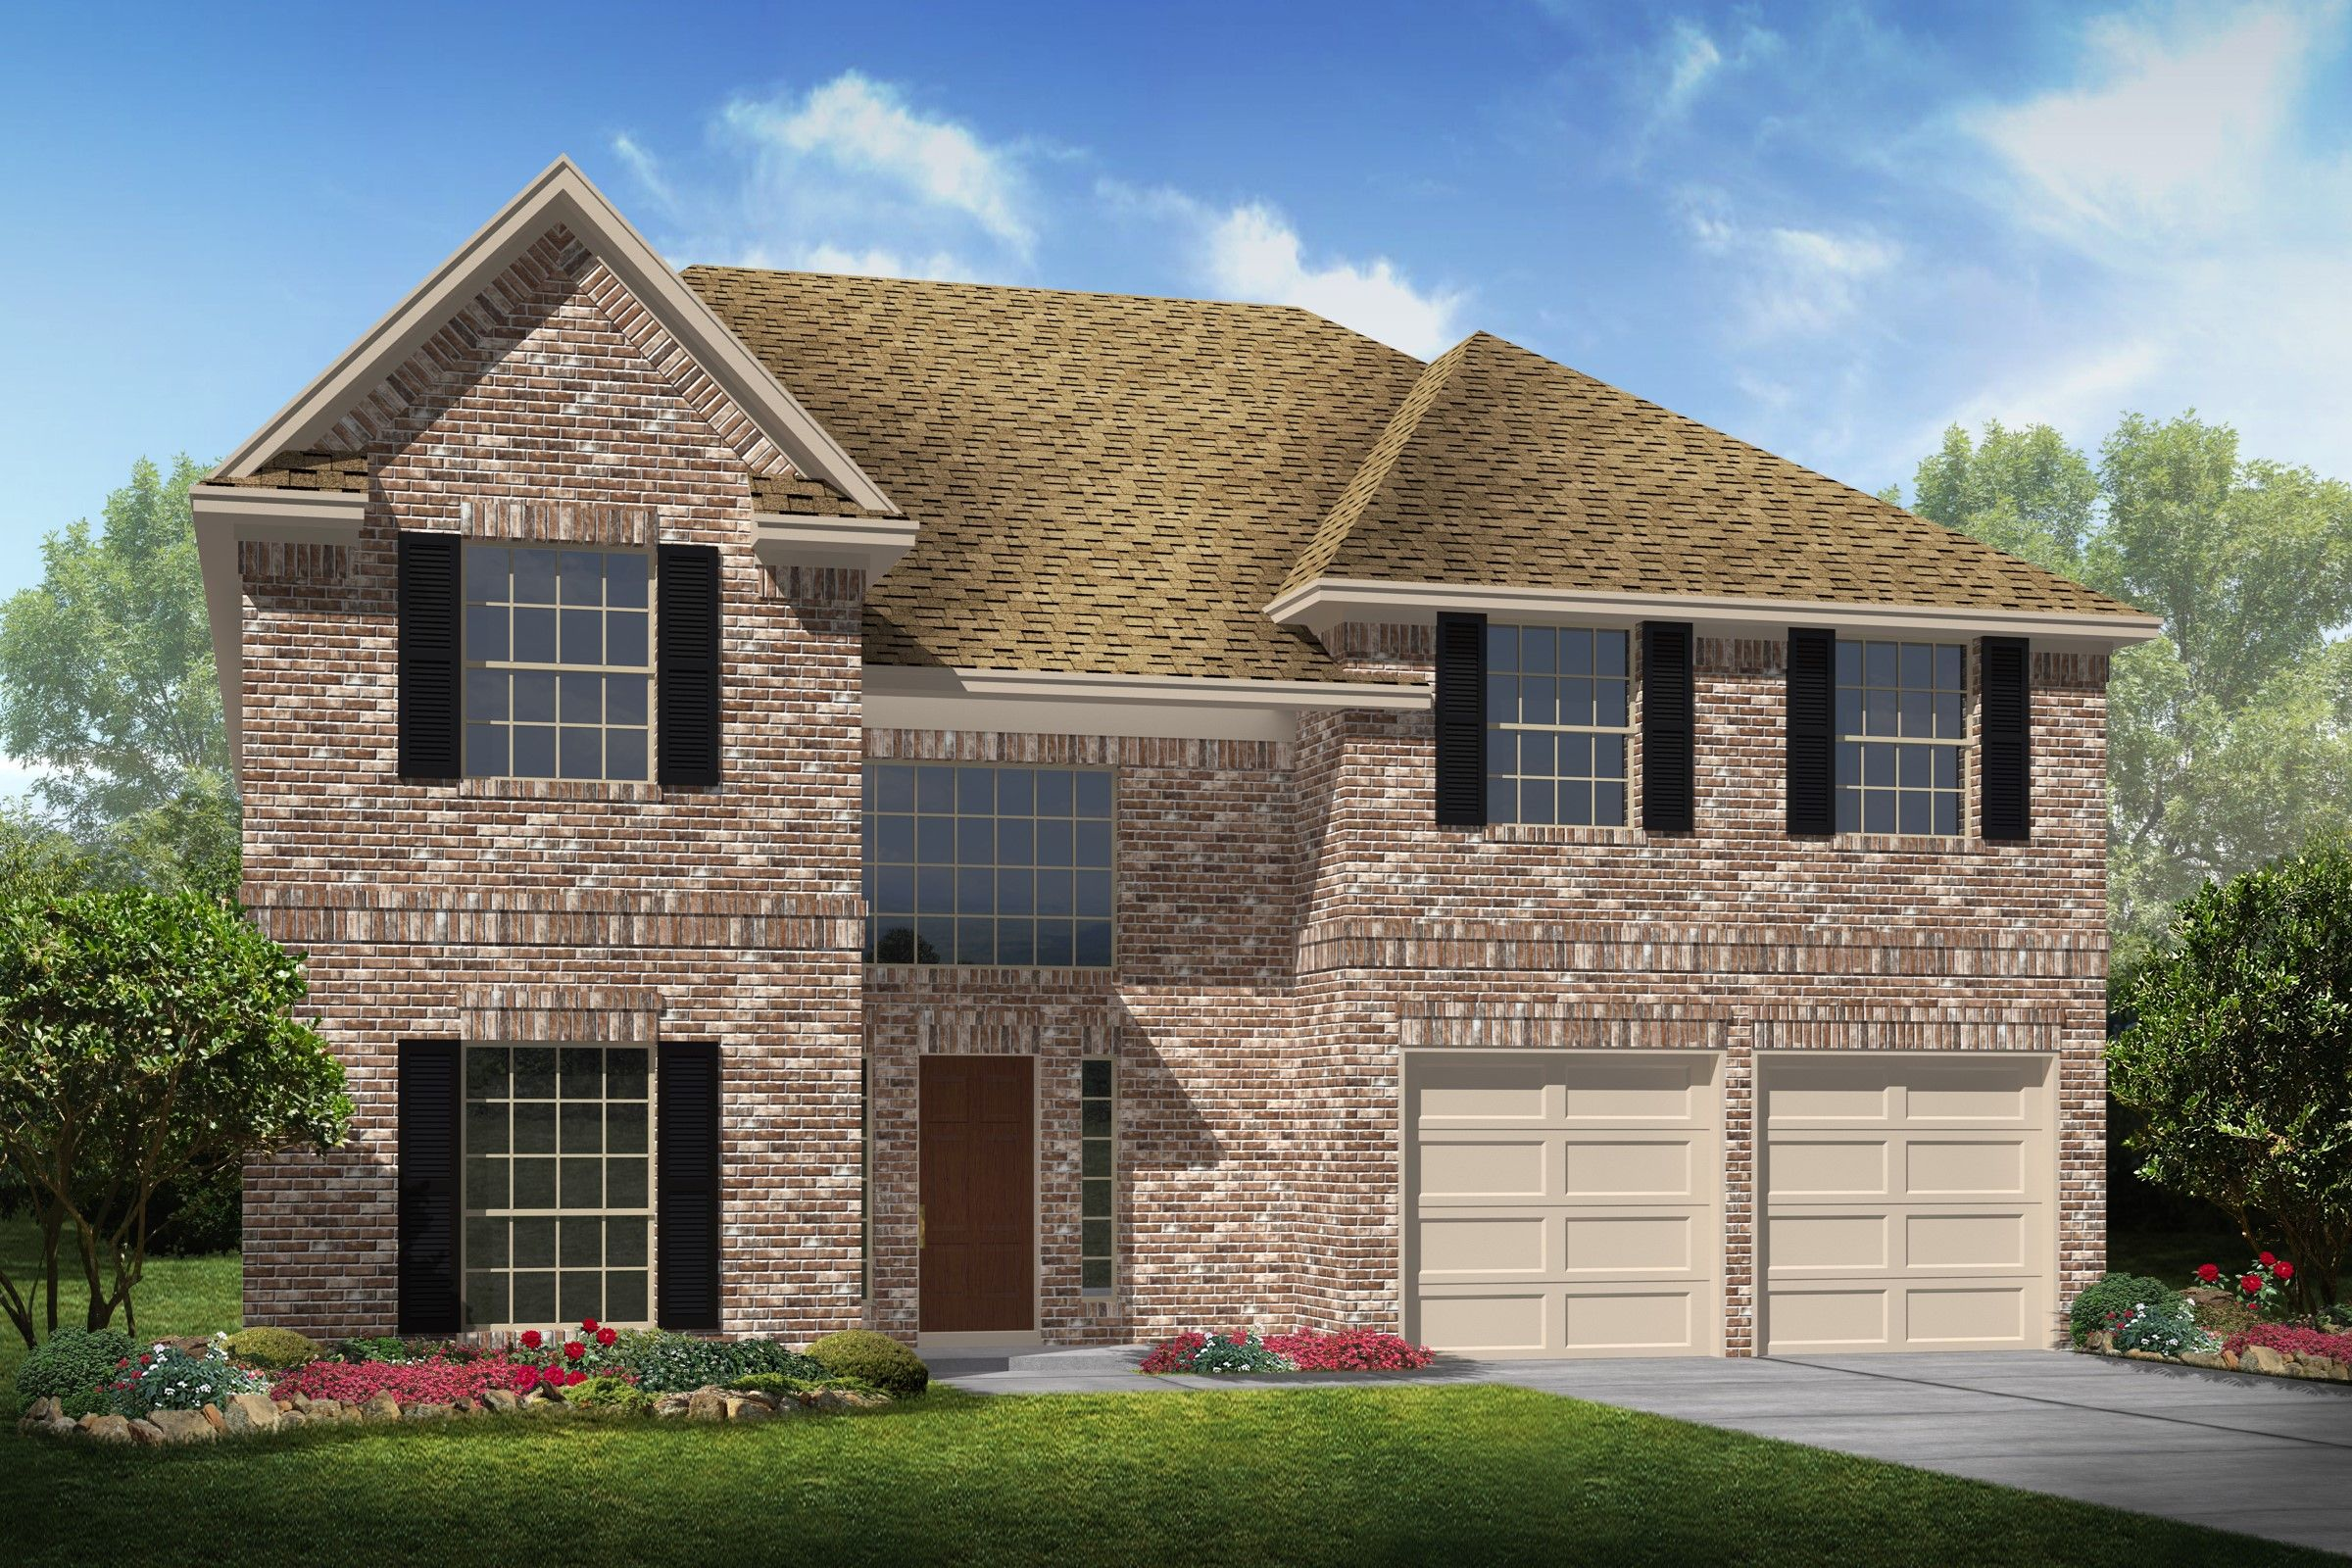 Single Family for Sale at Gaston Ii 4400 Hartwick Bend Drive, Homesite 4 Dickinson, Texas 77539 United States